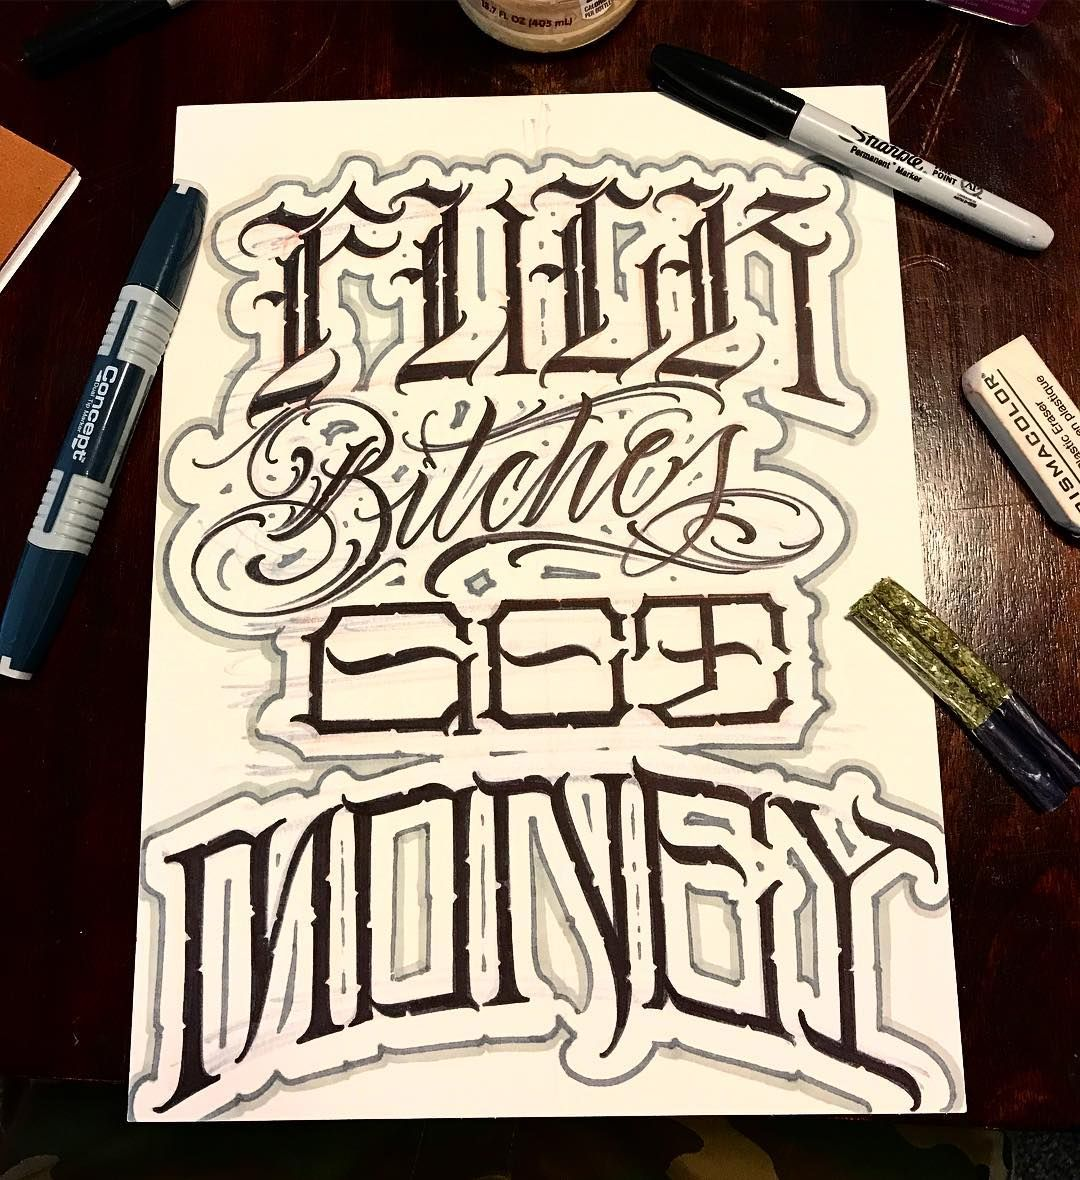 21+ Awesome Gangster calligraphy tattoo fonts ideas